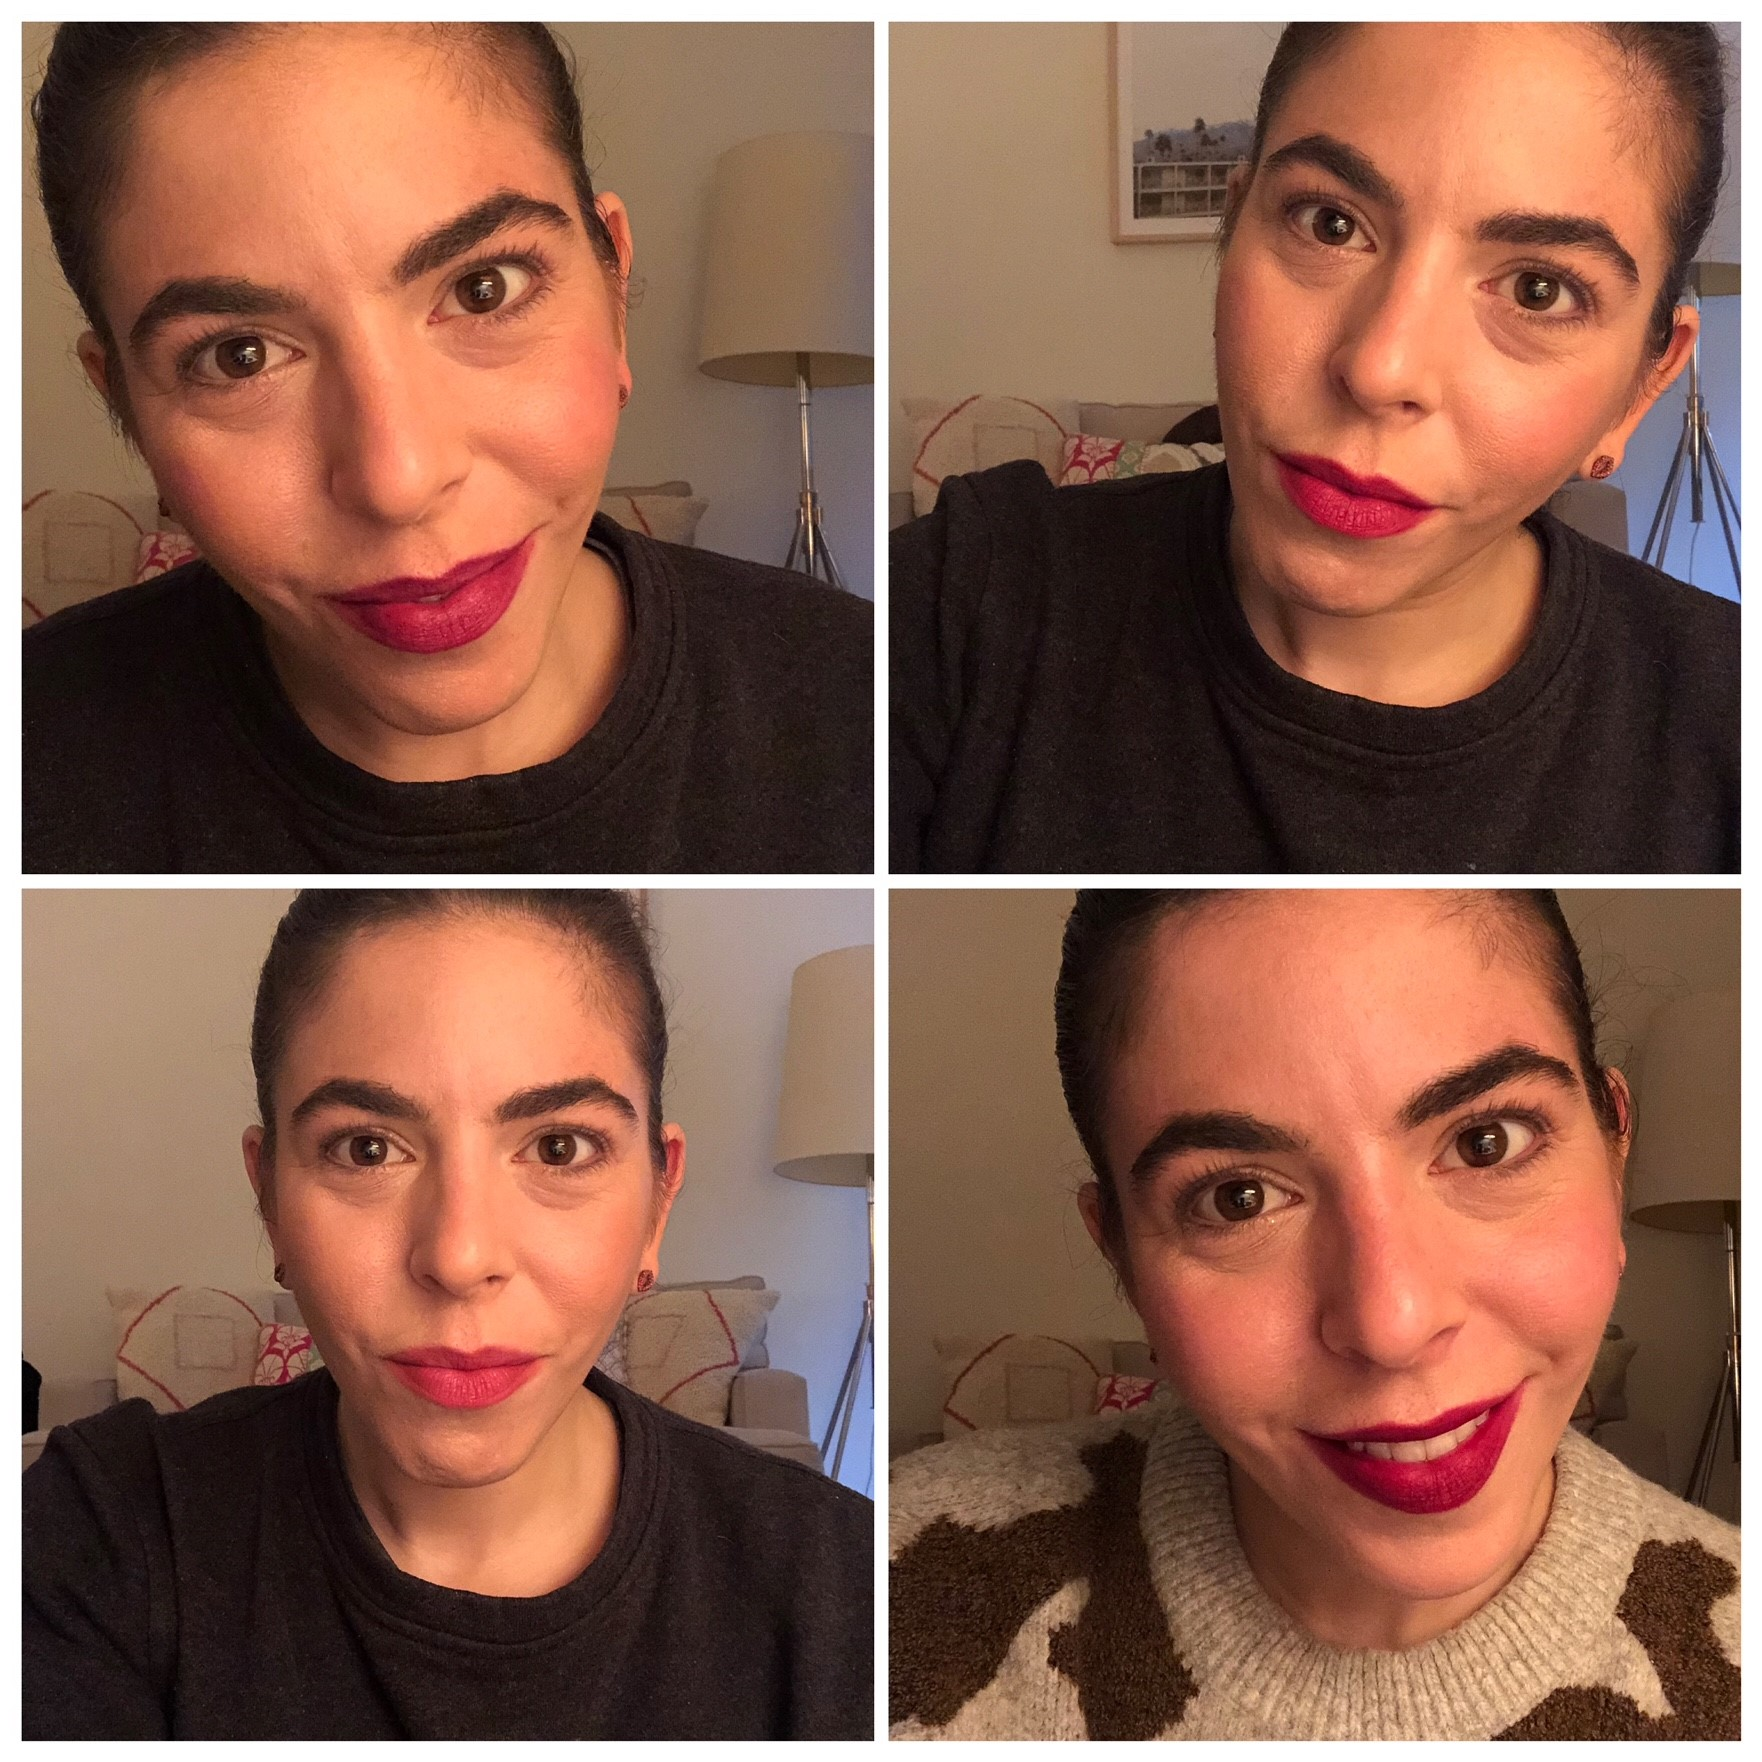 Wearing (clockwise from top left): Charlotte Tilbury Matte Revolution in Glastonberry, Nudestix Intense Matte Lip + Cheek Pencil in Raven, Bobbi Brown Art Stick in Cassis and Tom Ford Lip Color Matte in Black Dahlia.